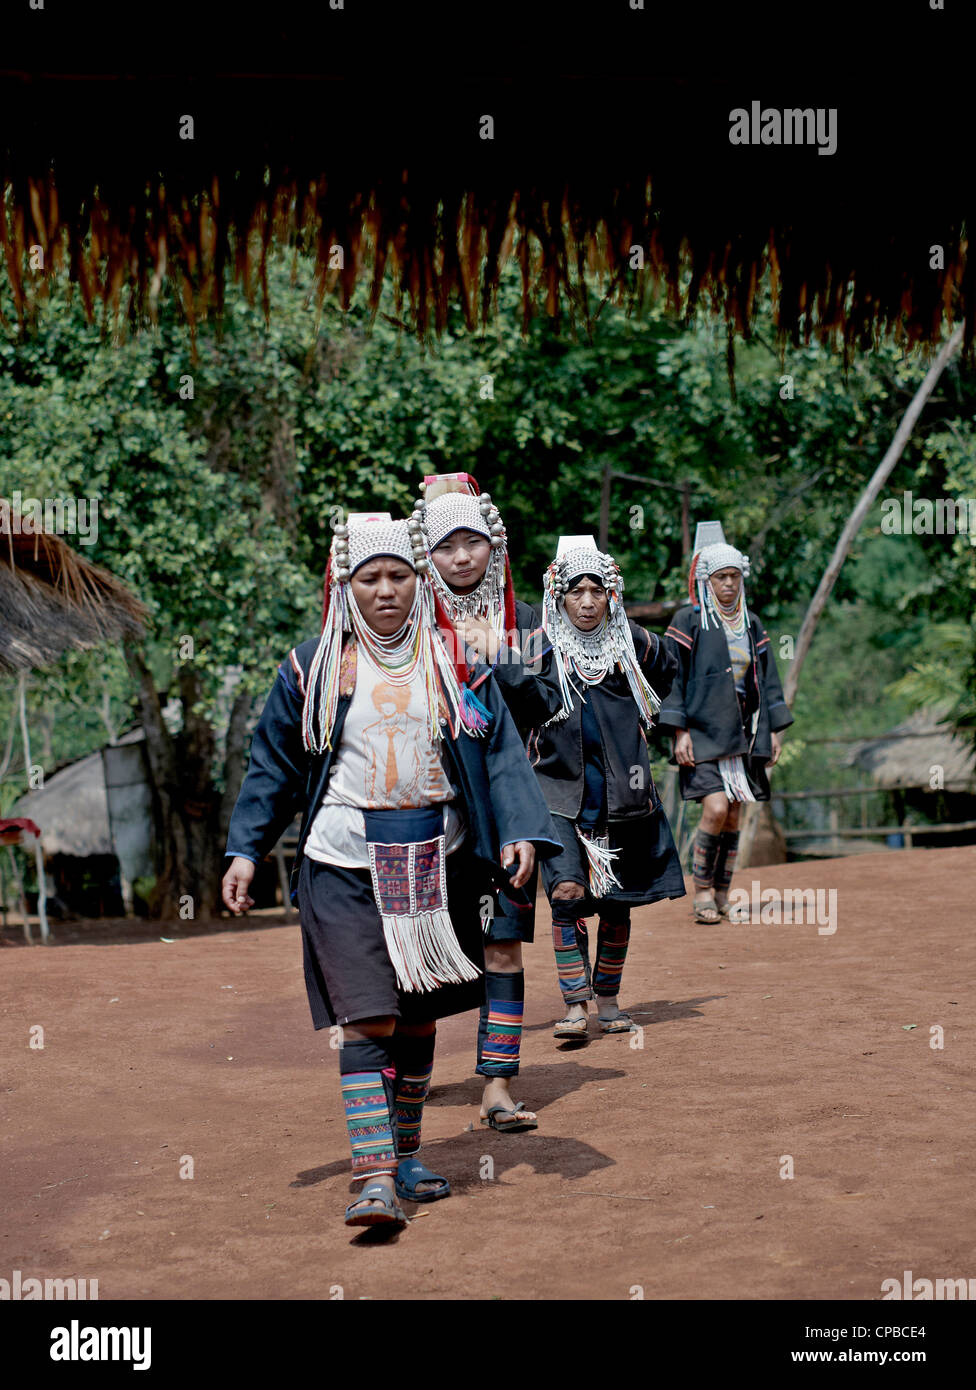 Akha hill tribe women of Northern Thailand. Chiang Mai province. Rural Thailand people S.E. Asia. Hill tribes - Stock Image